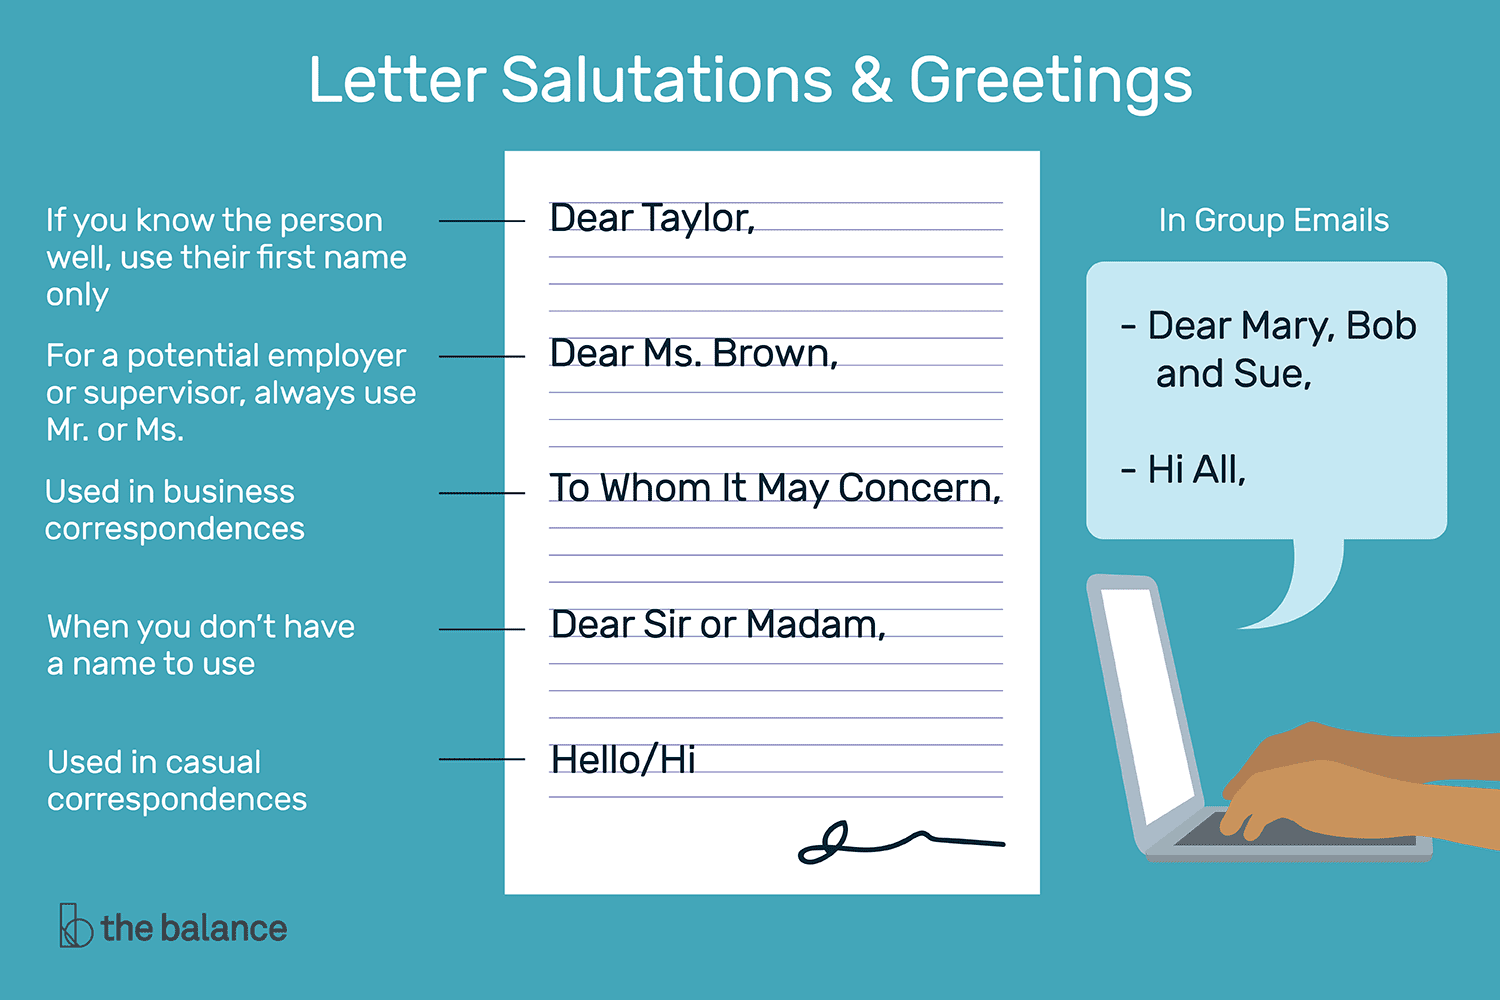 Best letter and email salutations and greetings examples of letter greetings m4hsunfo